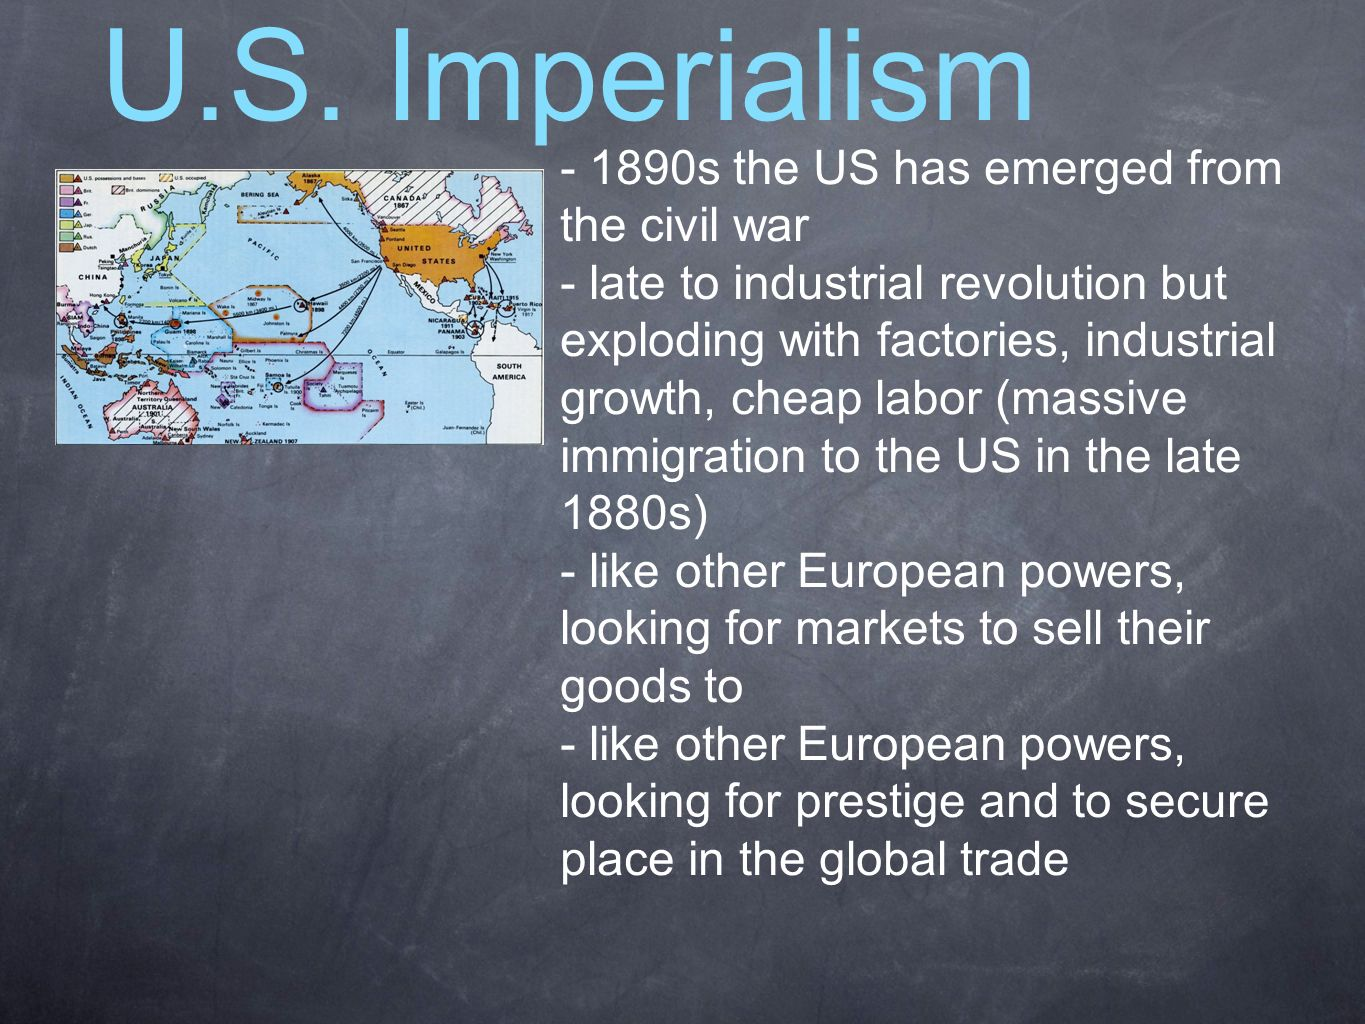 U.S. Imperialism - 1890s the US has emerged from the civil war